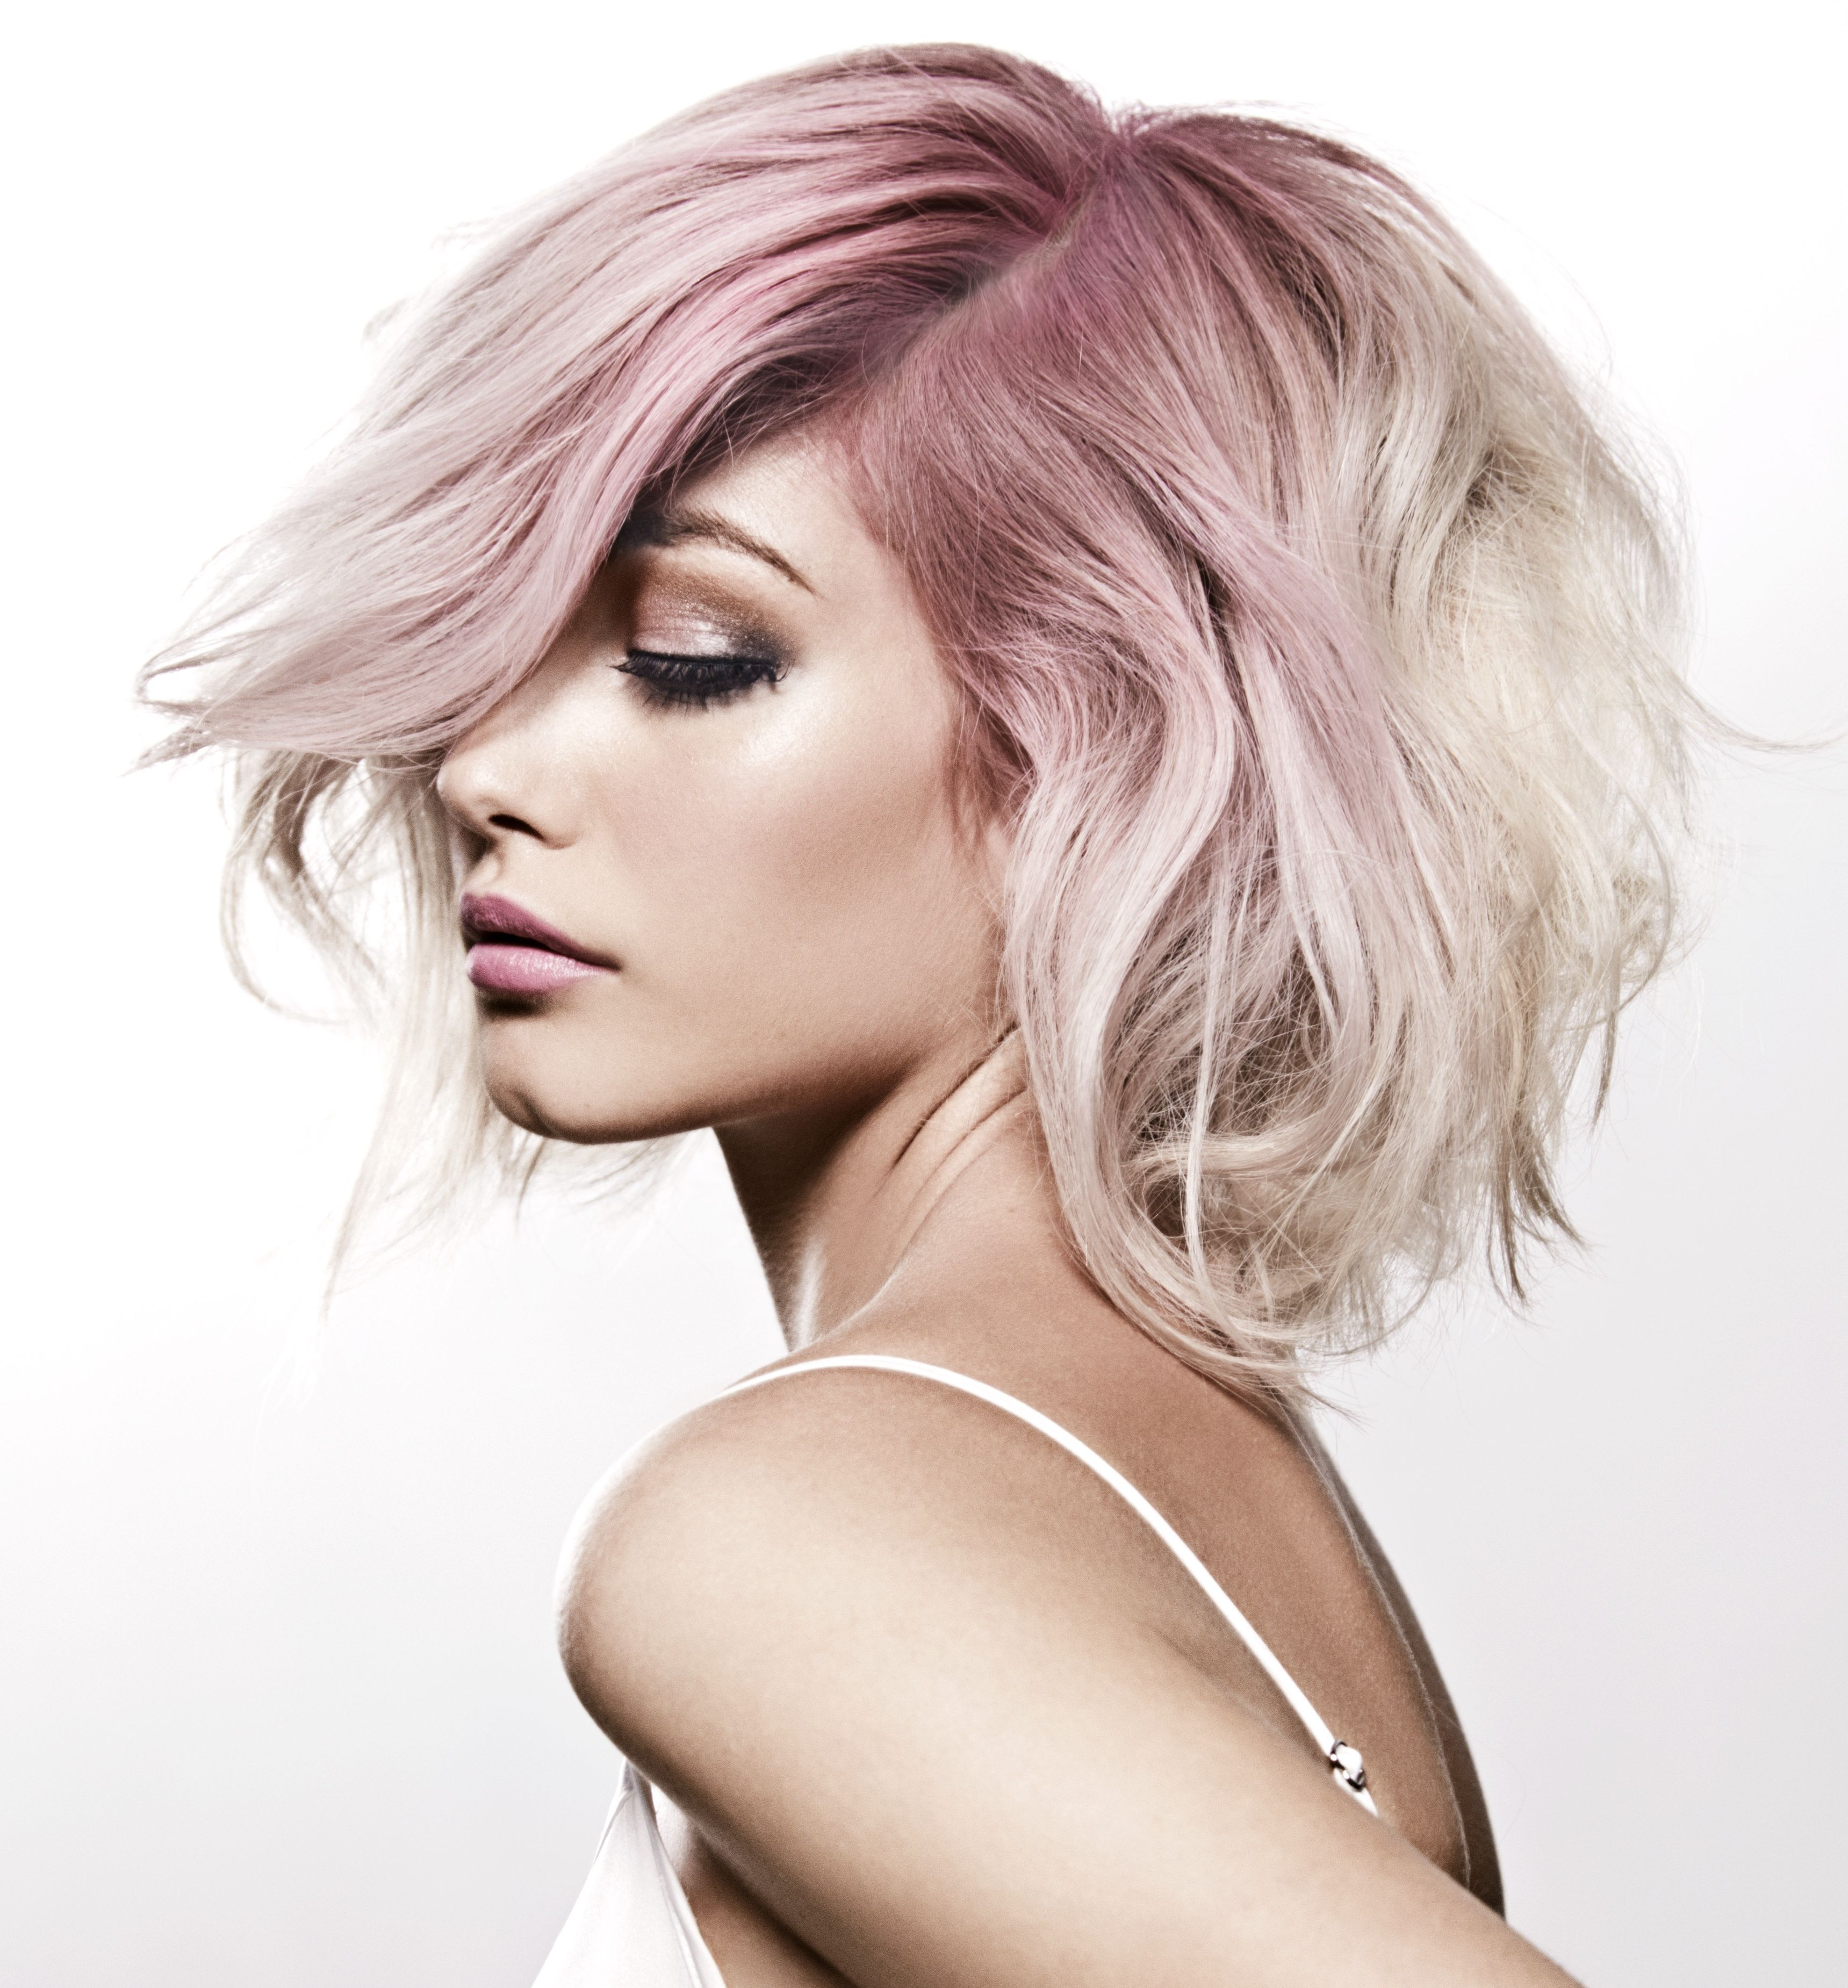 Millennial Pink The Hottest New Hair Colour Trend My Hair Care Pink Short Hair Roots Hair Growing Out Hair